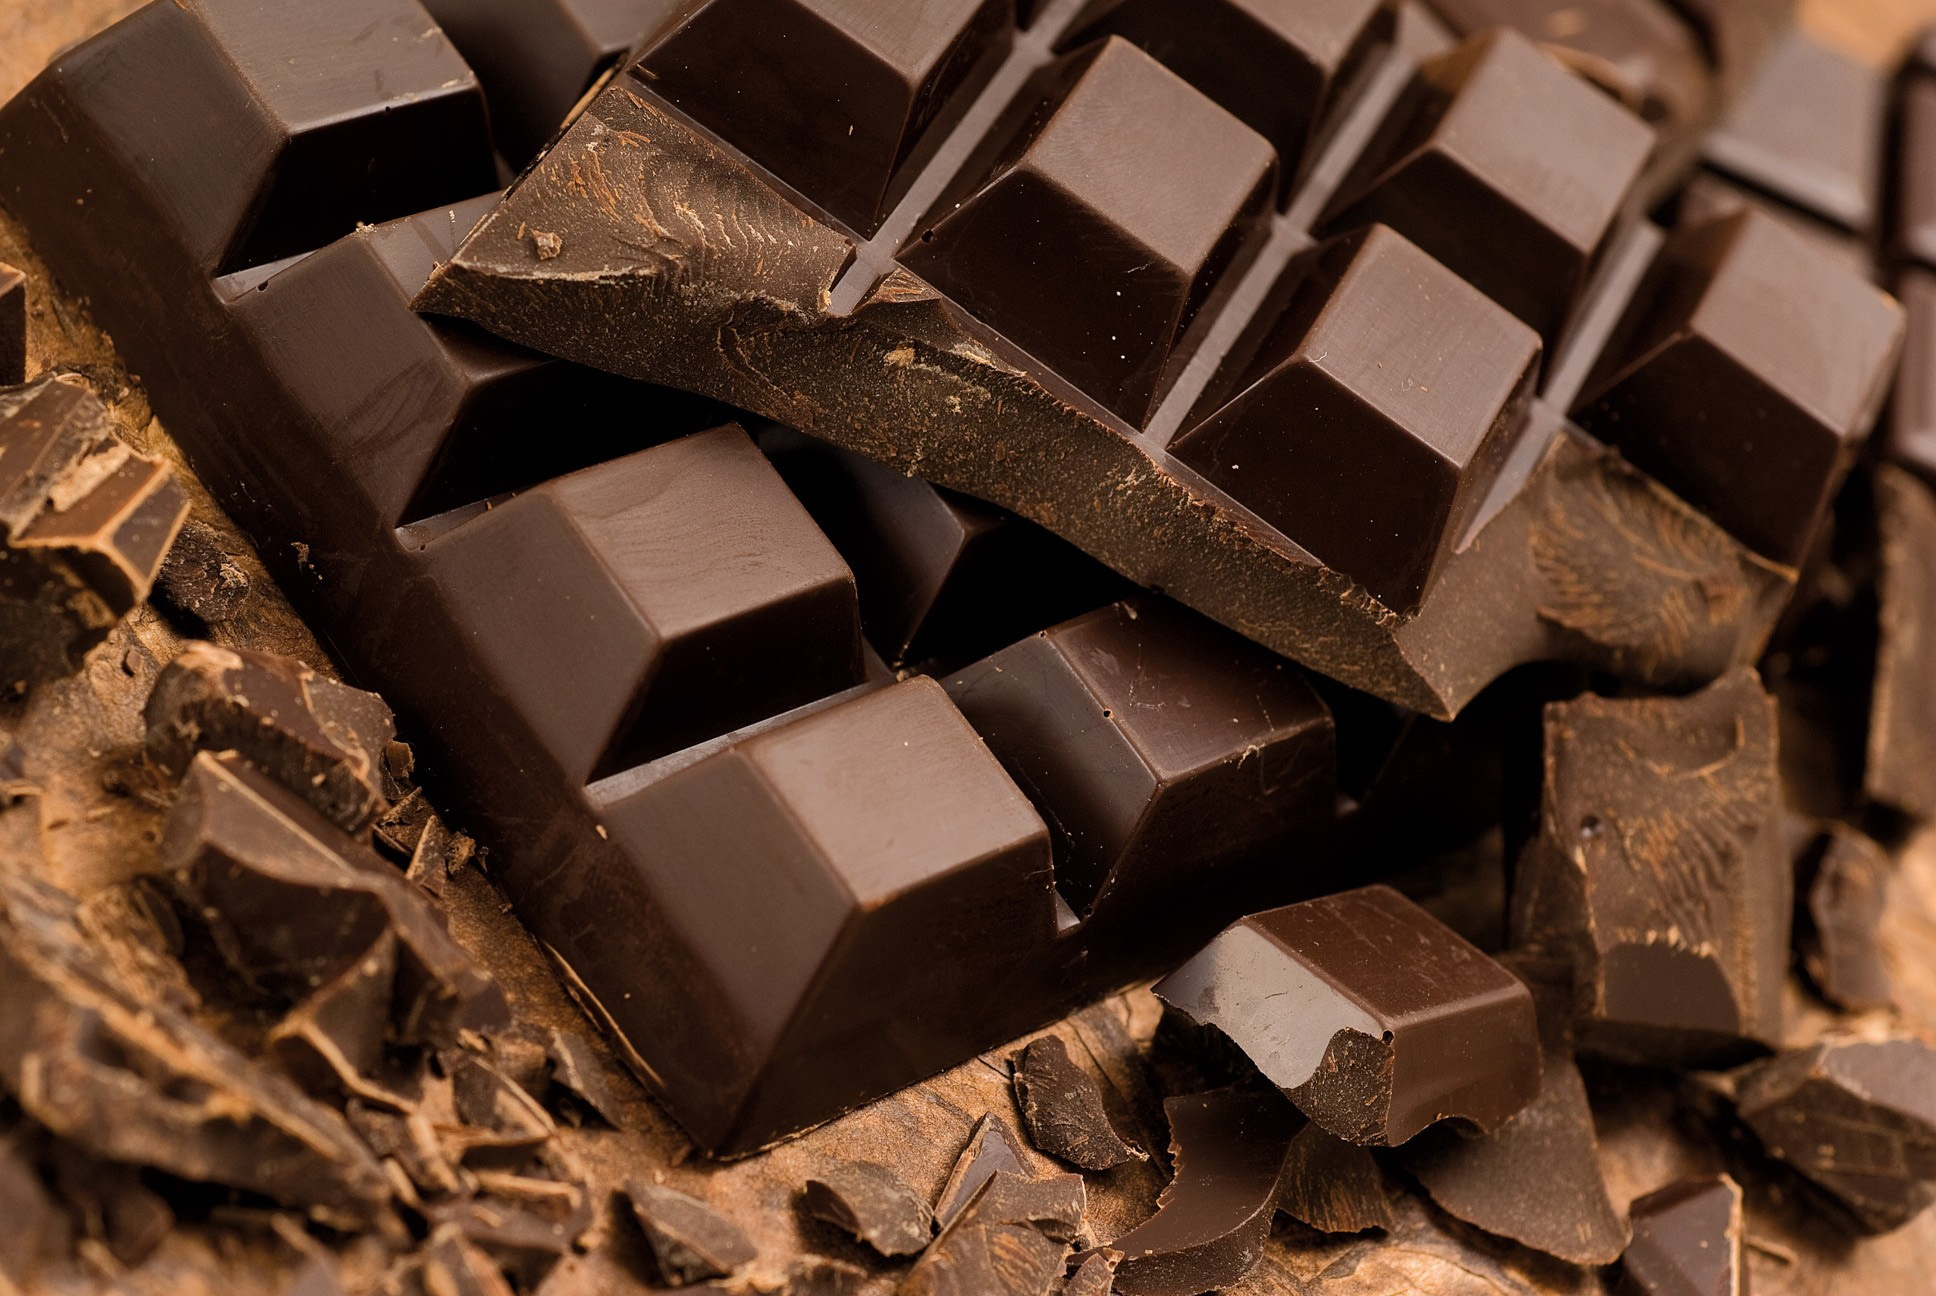 The Secret Message Behind Chocolate Cravings